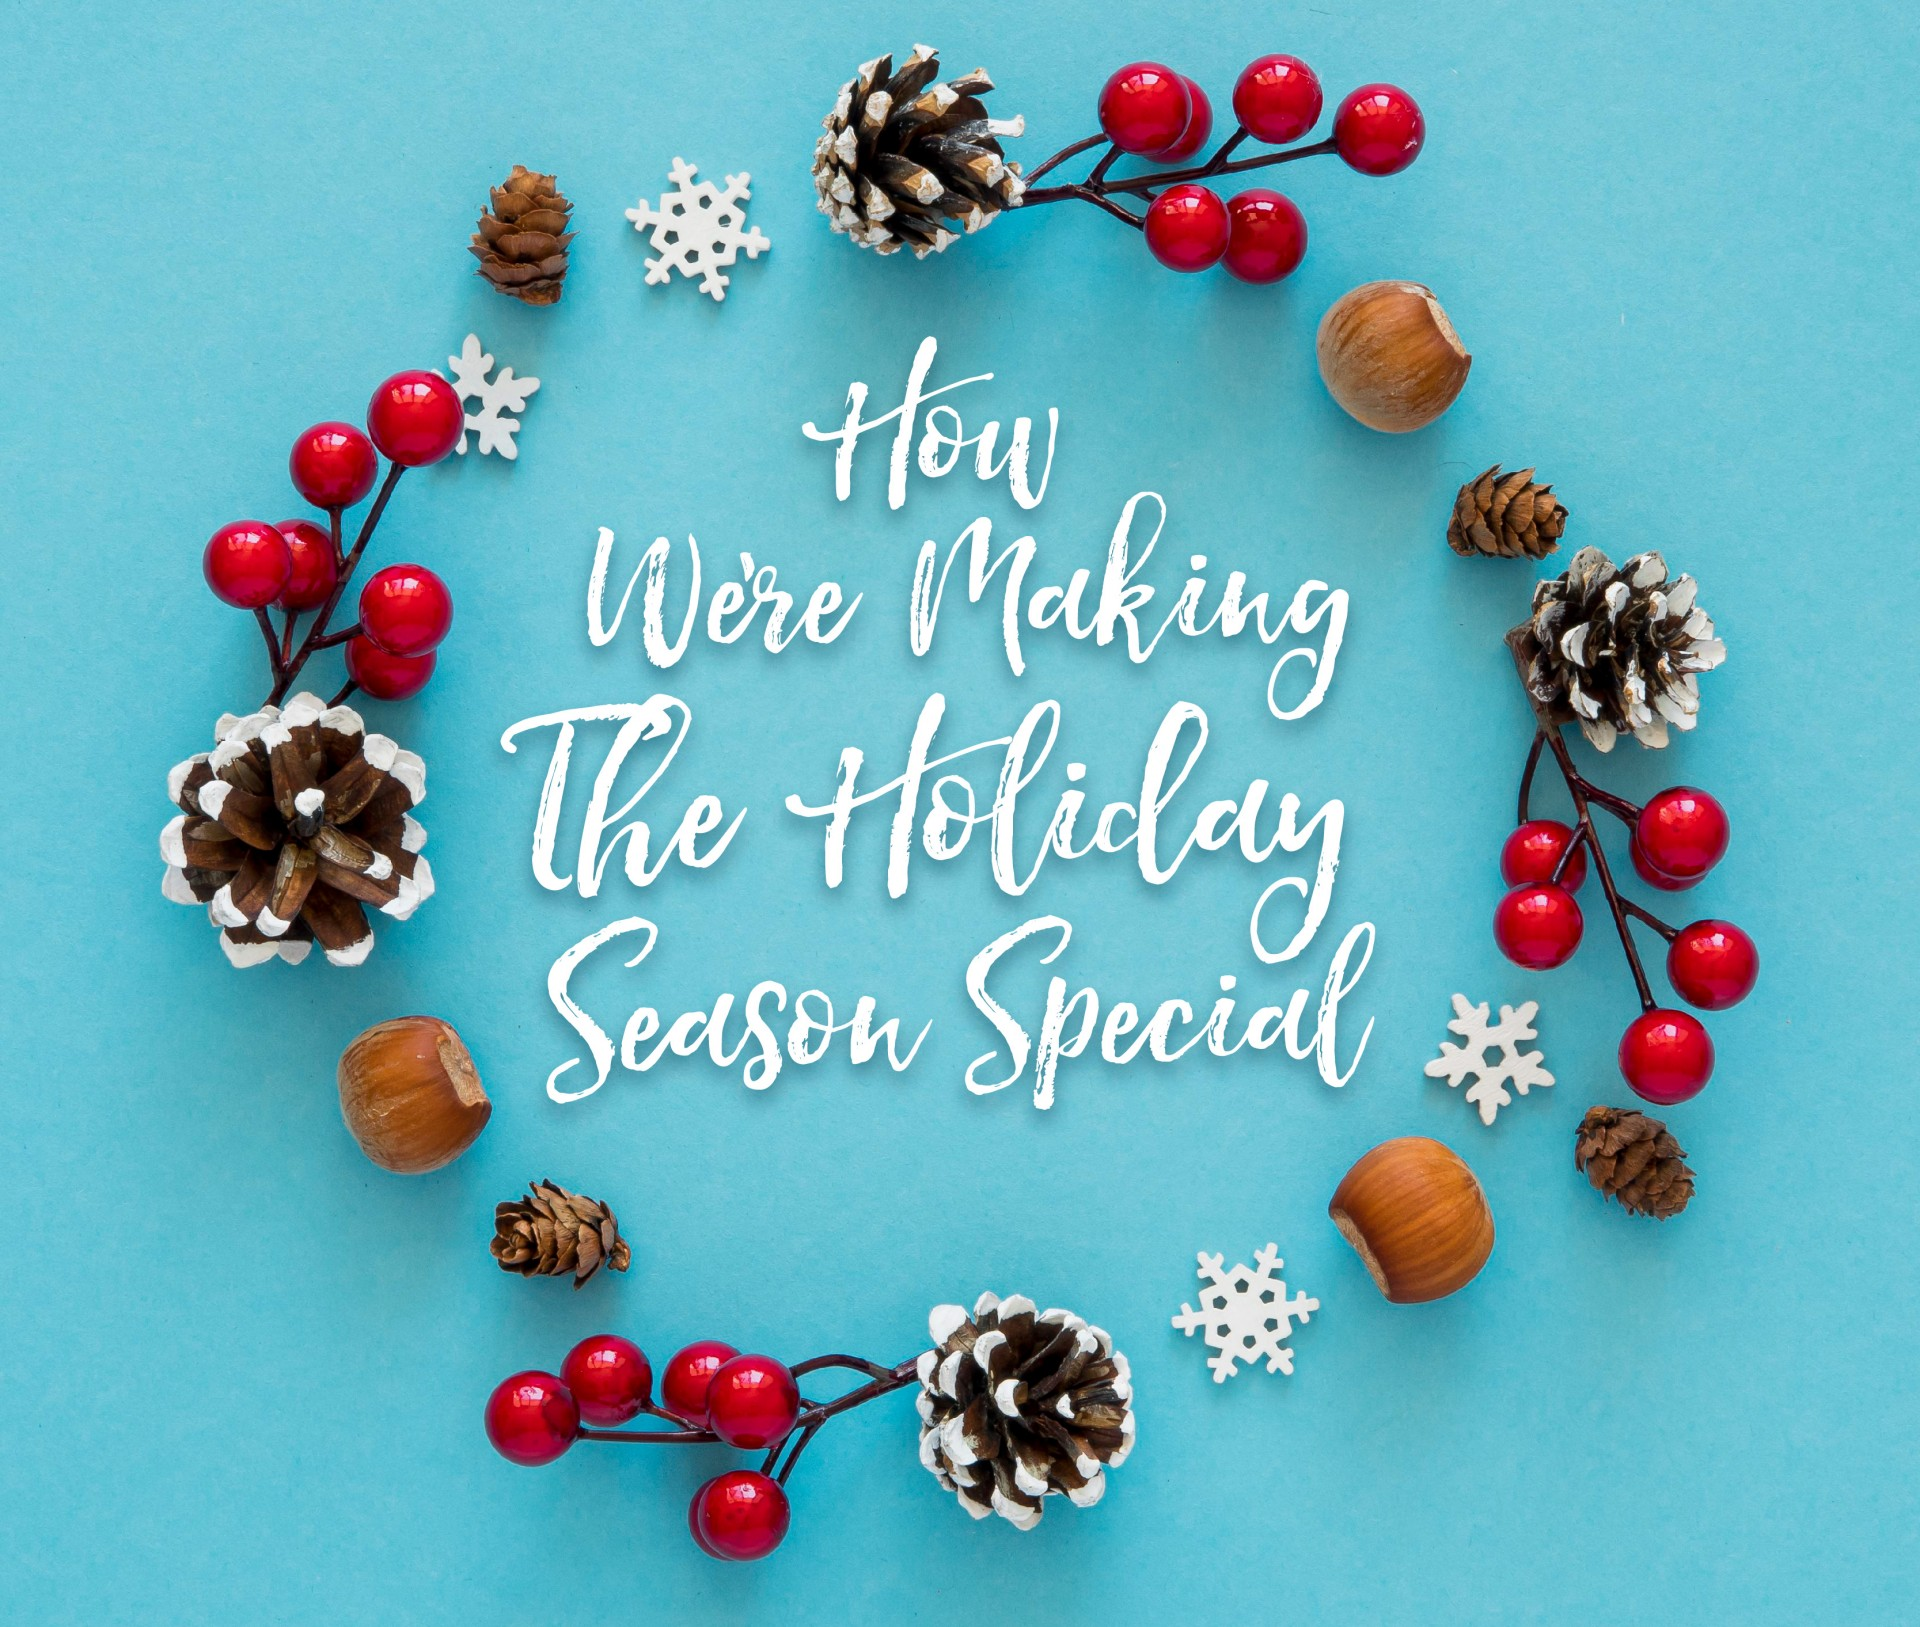 How We're Making The Holiday Season Special